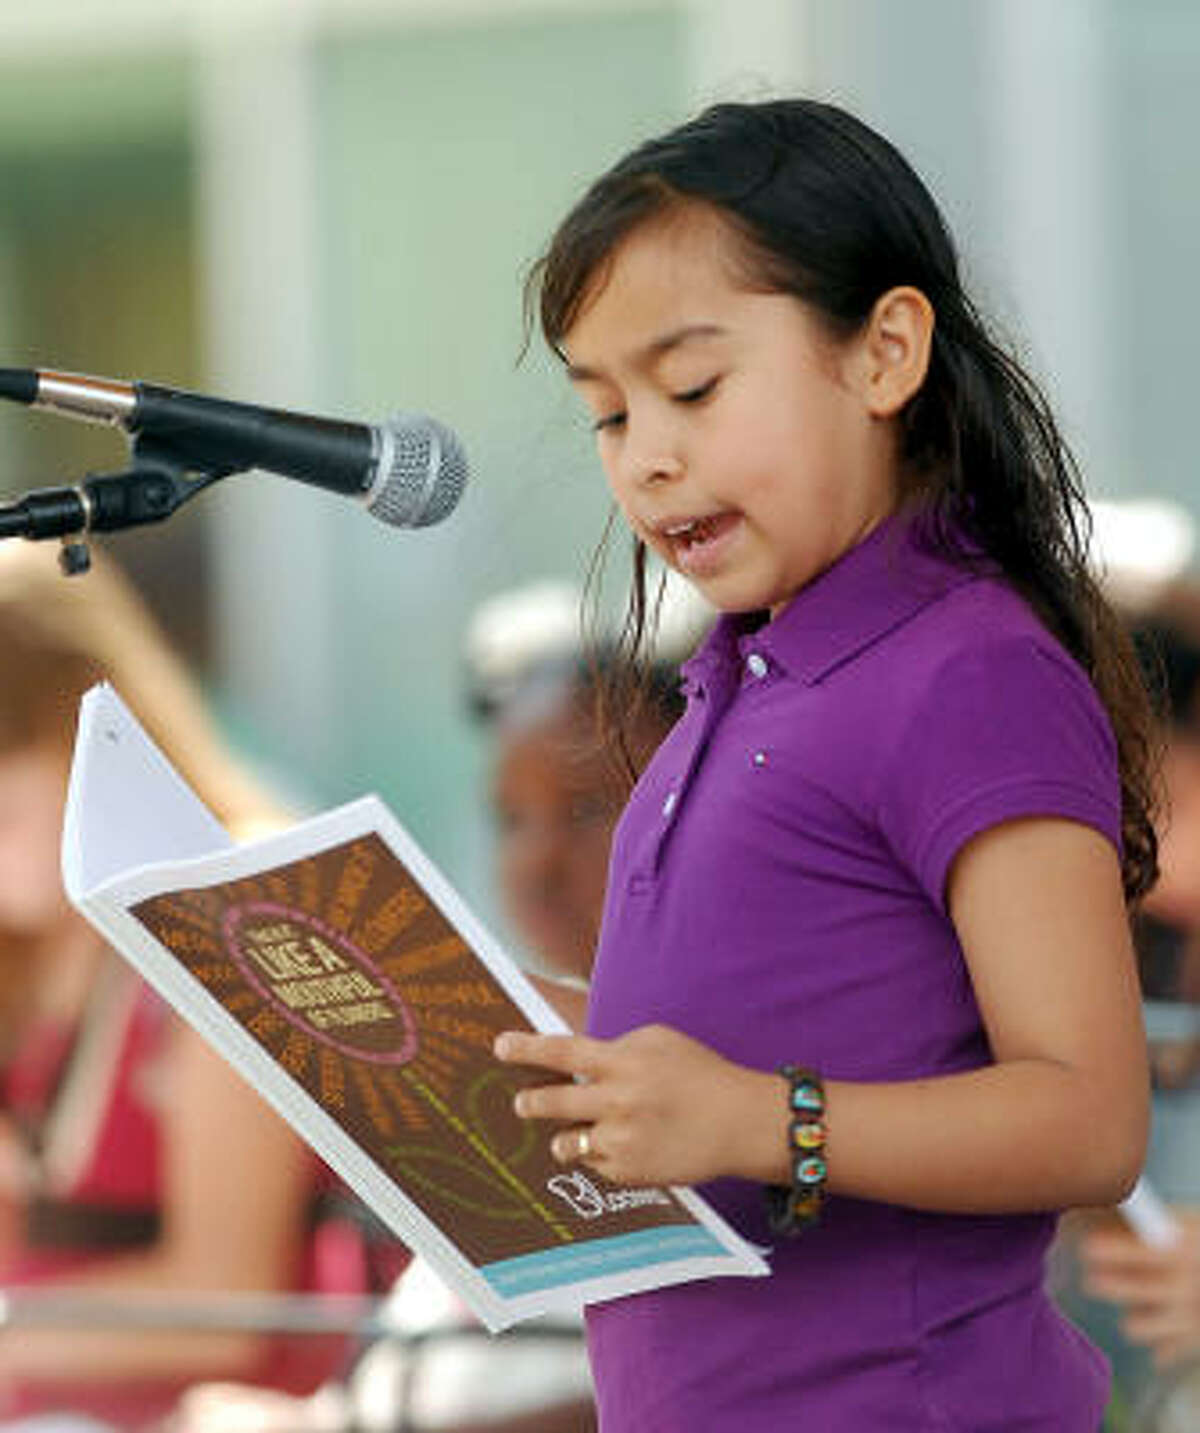 Have kids practice their writing, math and science skills. Writers in the Schools offers a free writers workshop to keep kids' literary skills sharp over the summer. The workshop is held Saturdays from 10:30 to 11:30 at HPL Express at Discovery Green. Here, Jakeline Borja, a third-grader reads her original work.